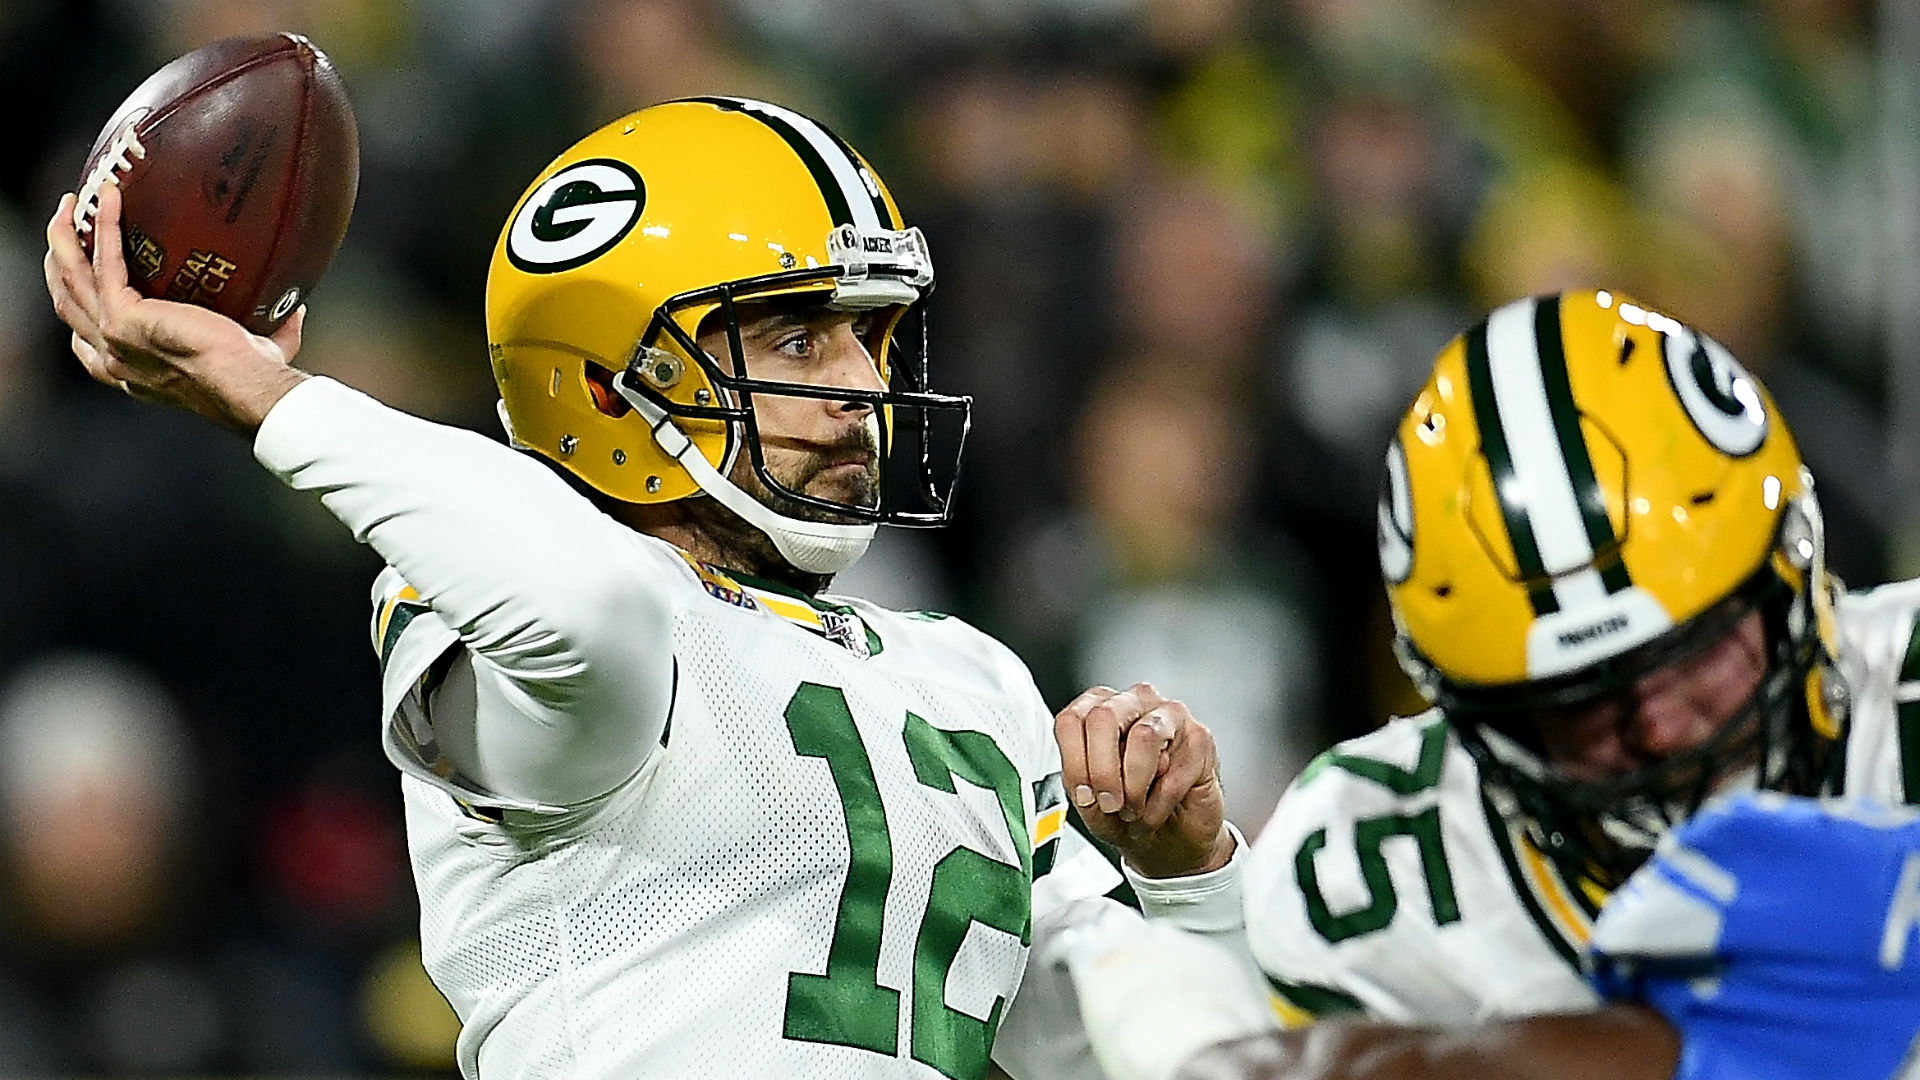 Three takeaways from the Packers' narrow win over the Lions